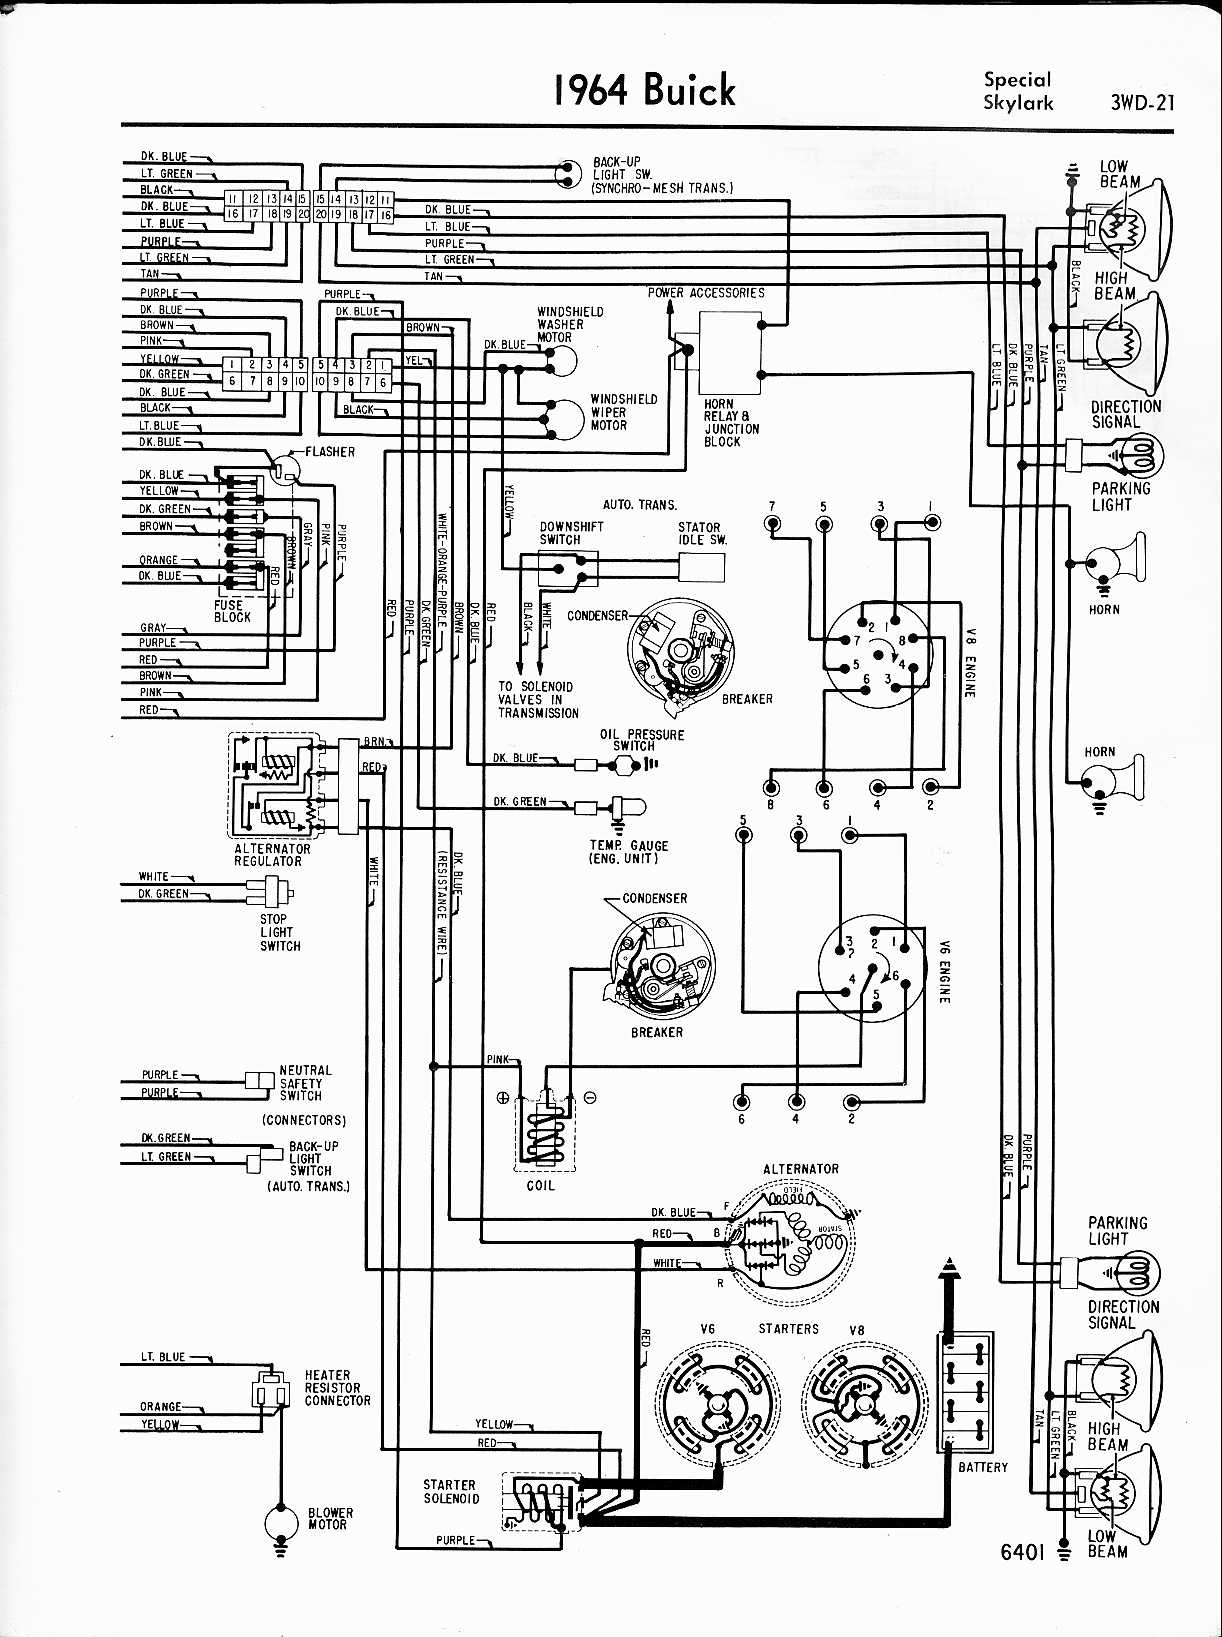 1968 Buick Fuse Box Wiring Diagram 2013 Lacrosse For 1972 Skylark Blog About Diagrams Steering Wheel